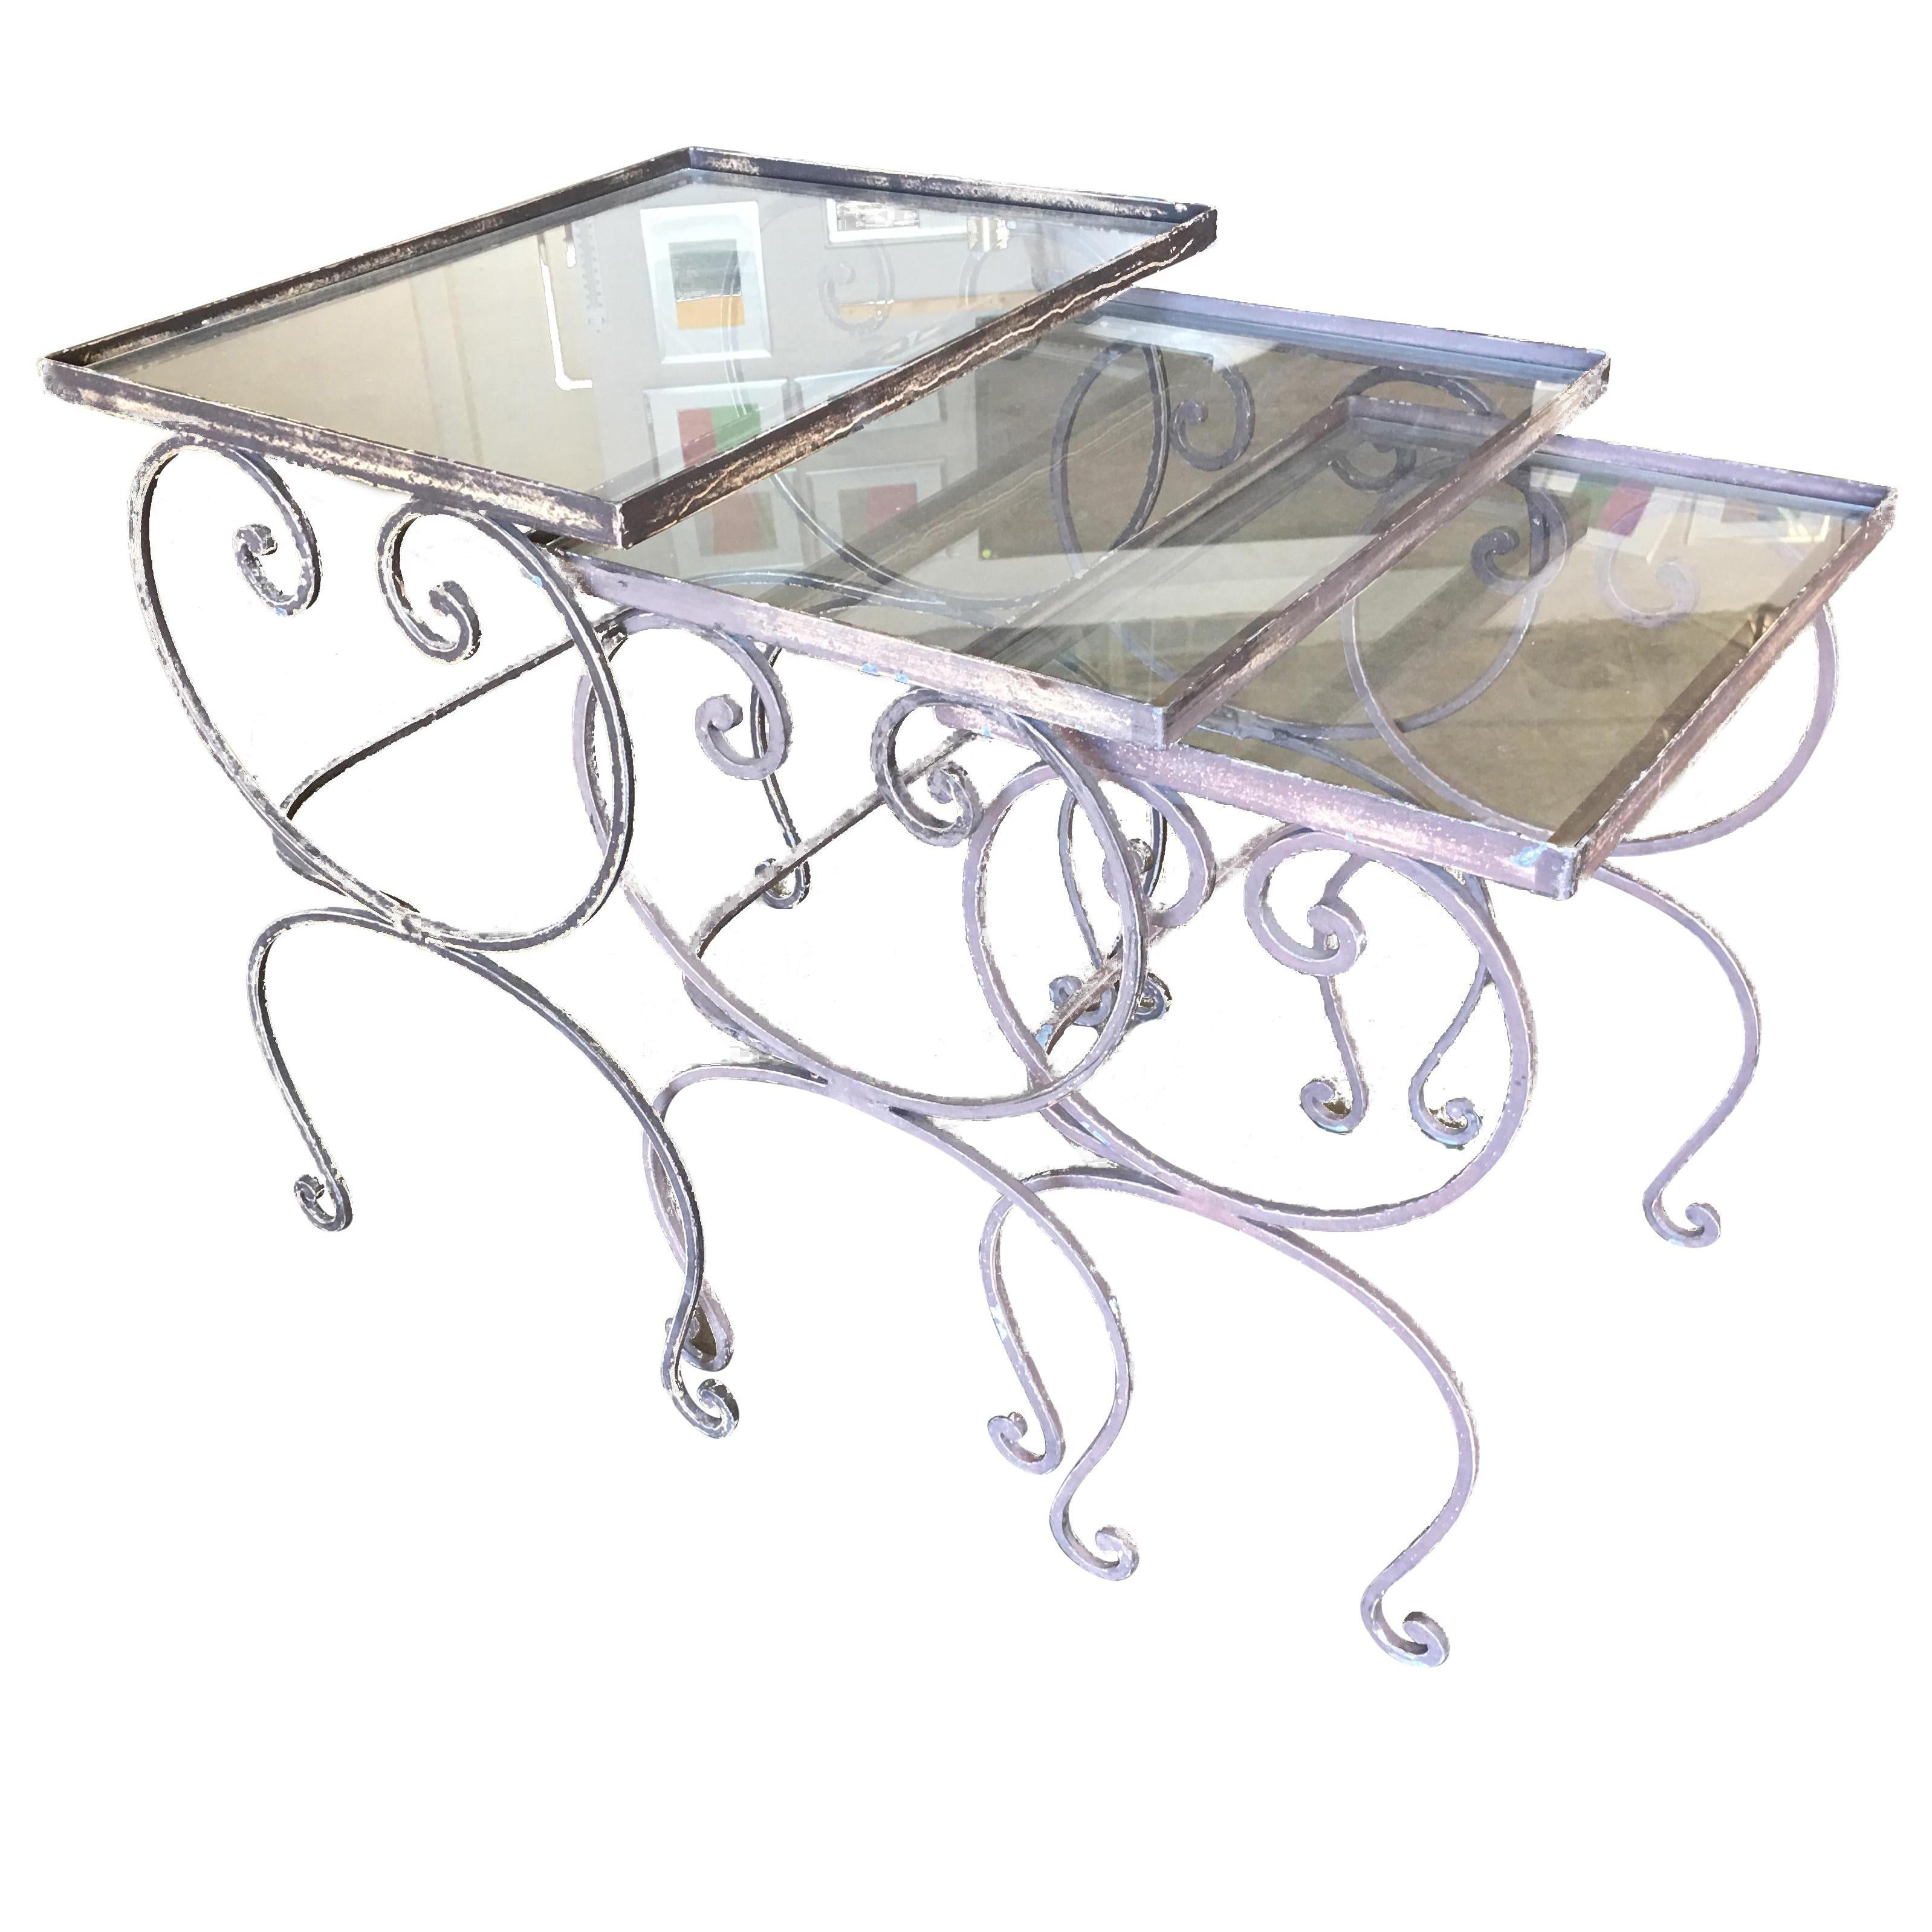 scrolling steel outdoor patio nesting side tables with glass tops set of 3